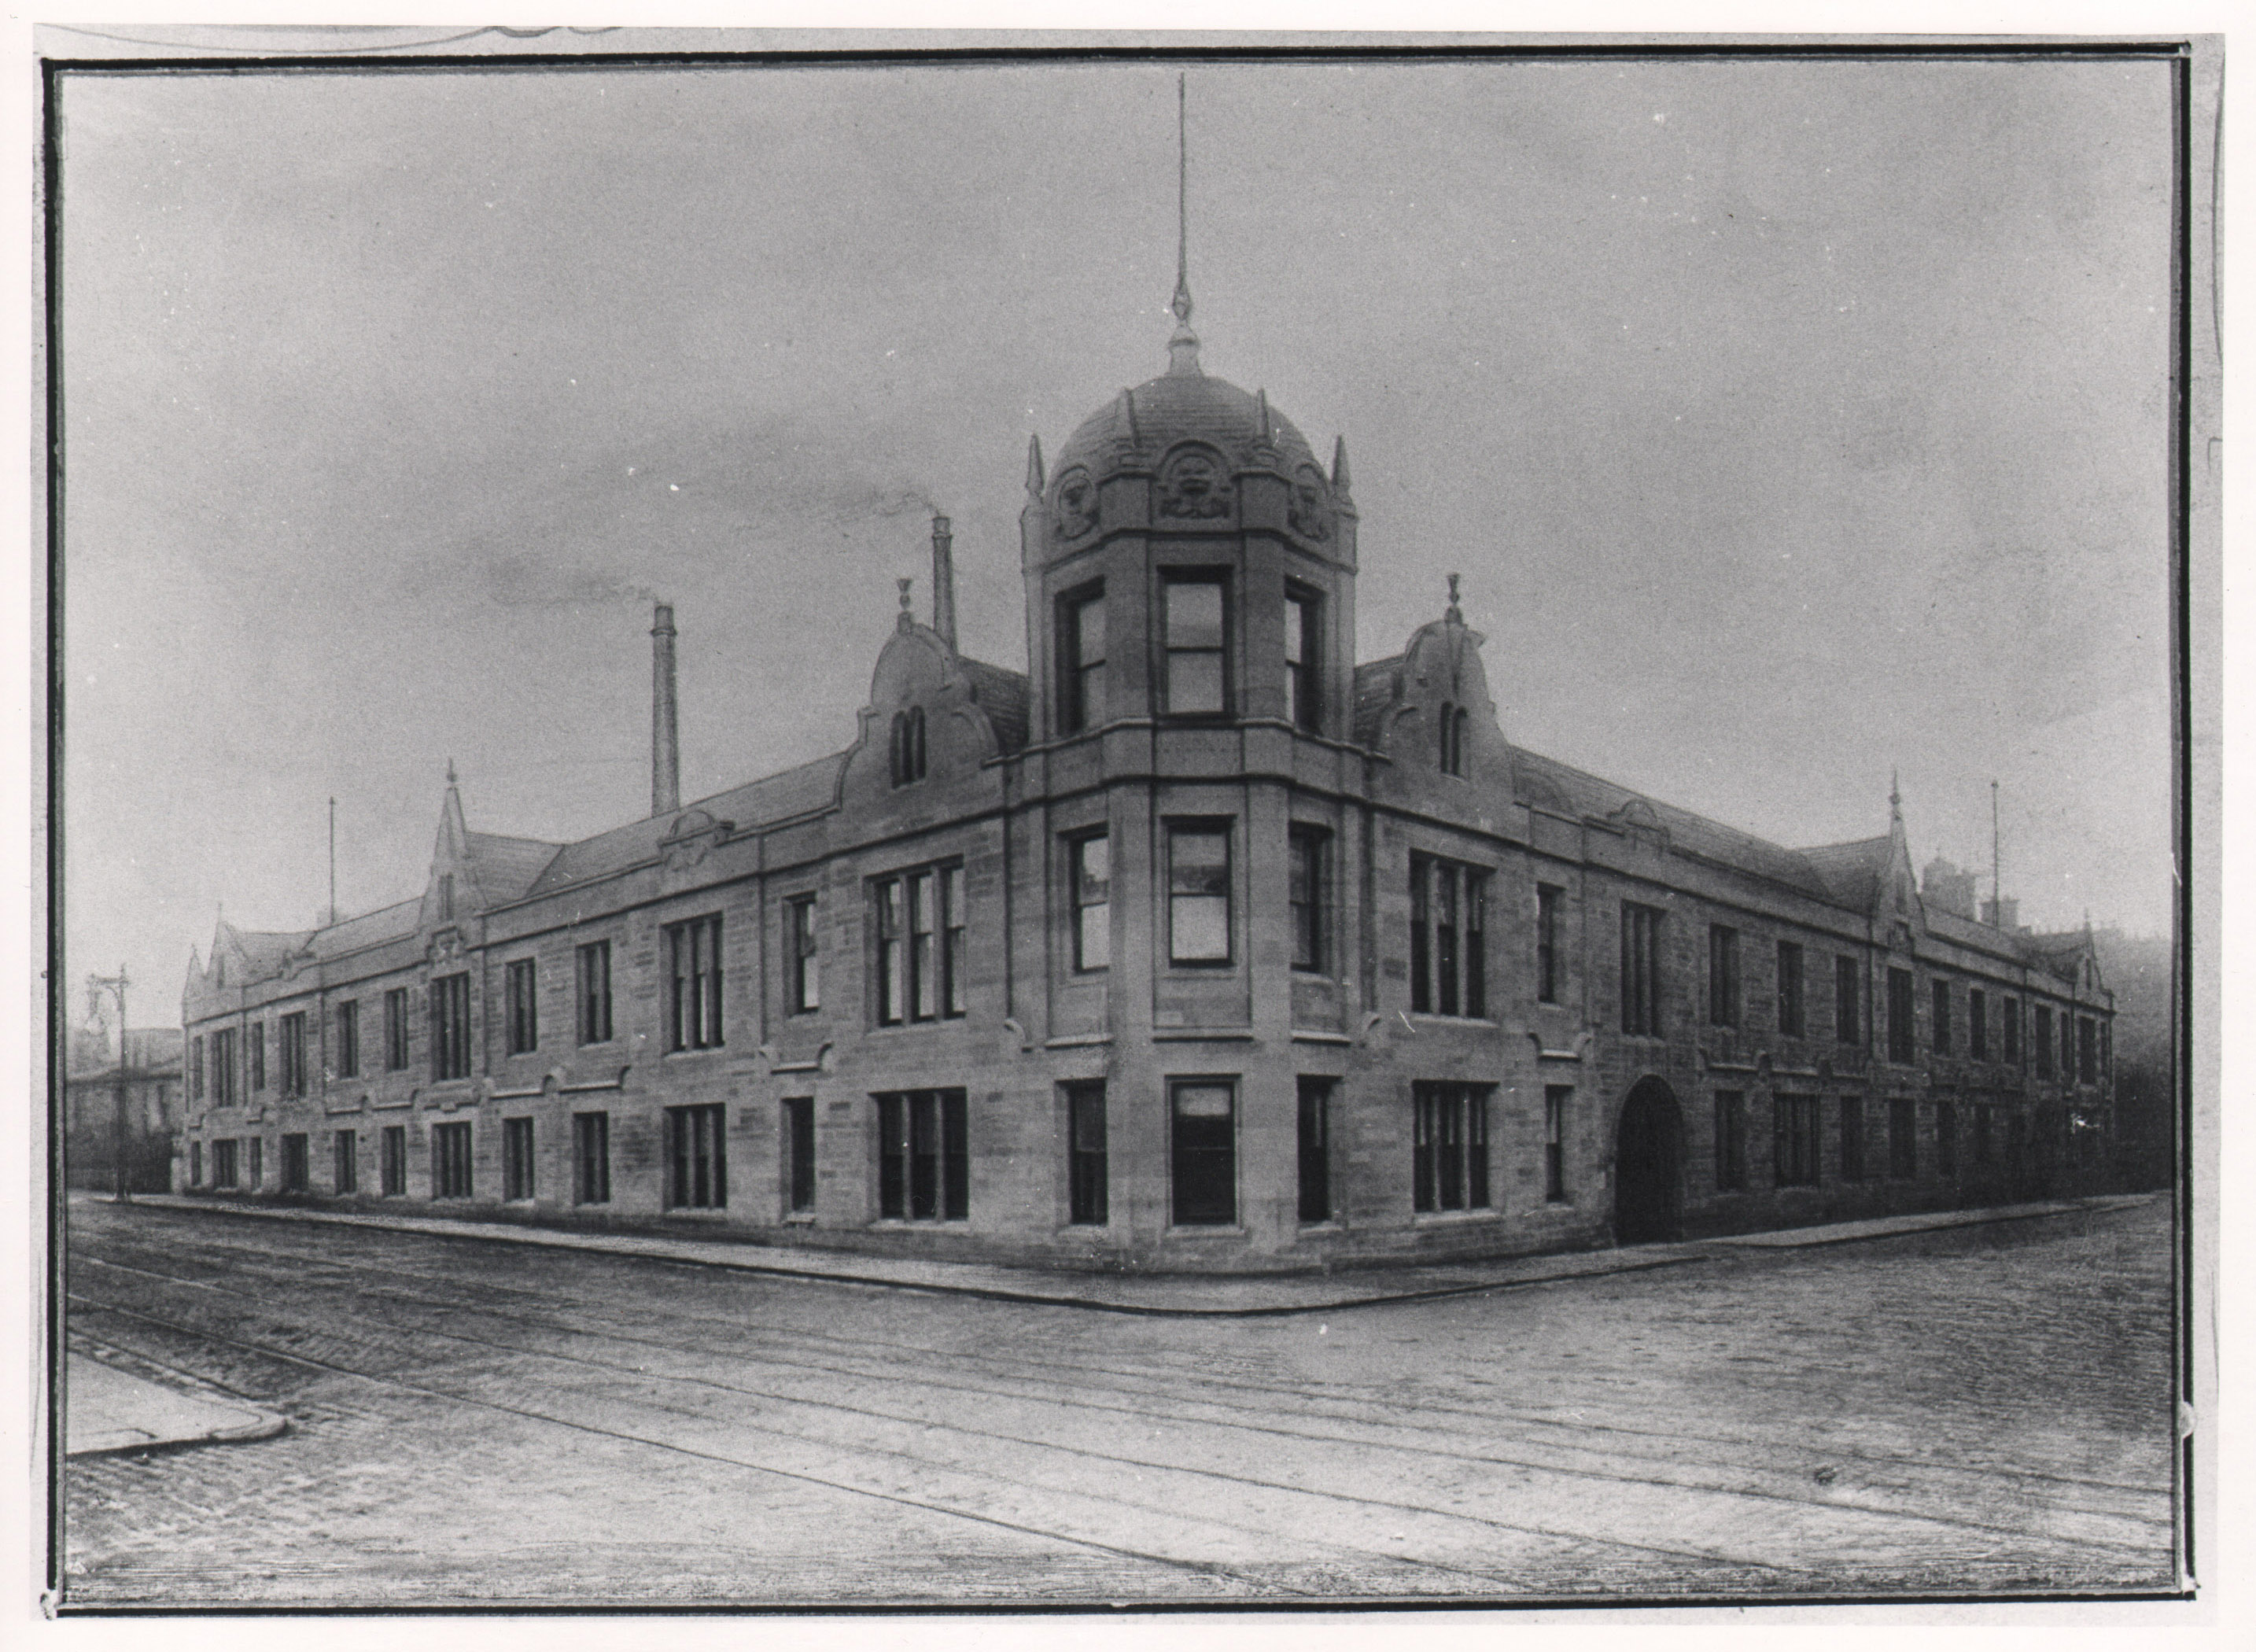 Exterior of the Middlemass Biscuit Factory (image courtosy of the National Library of Scotland)